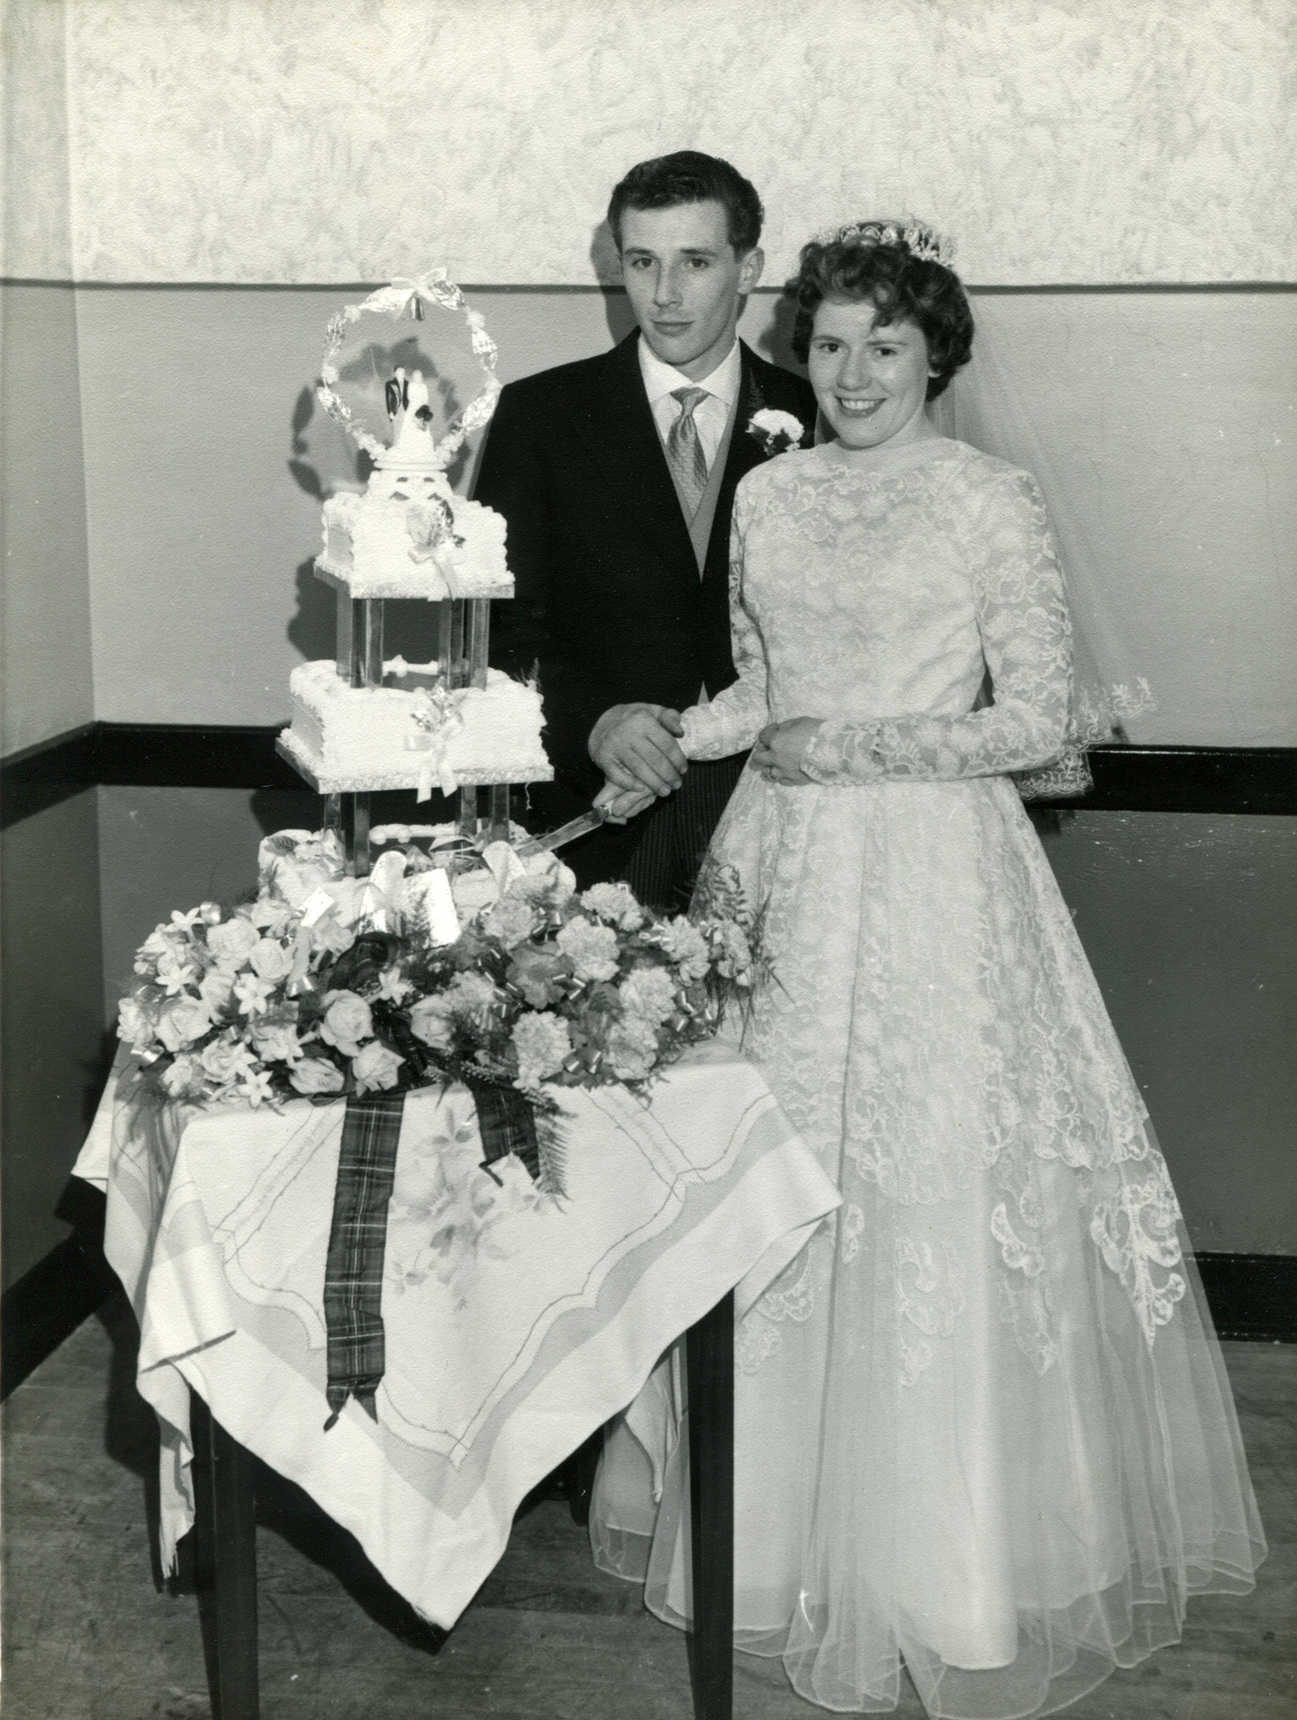 Bride And Bridegroom Cut The Wedding Cake 1958